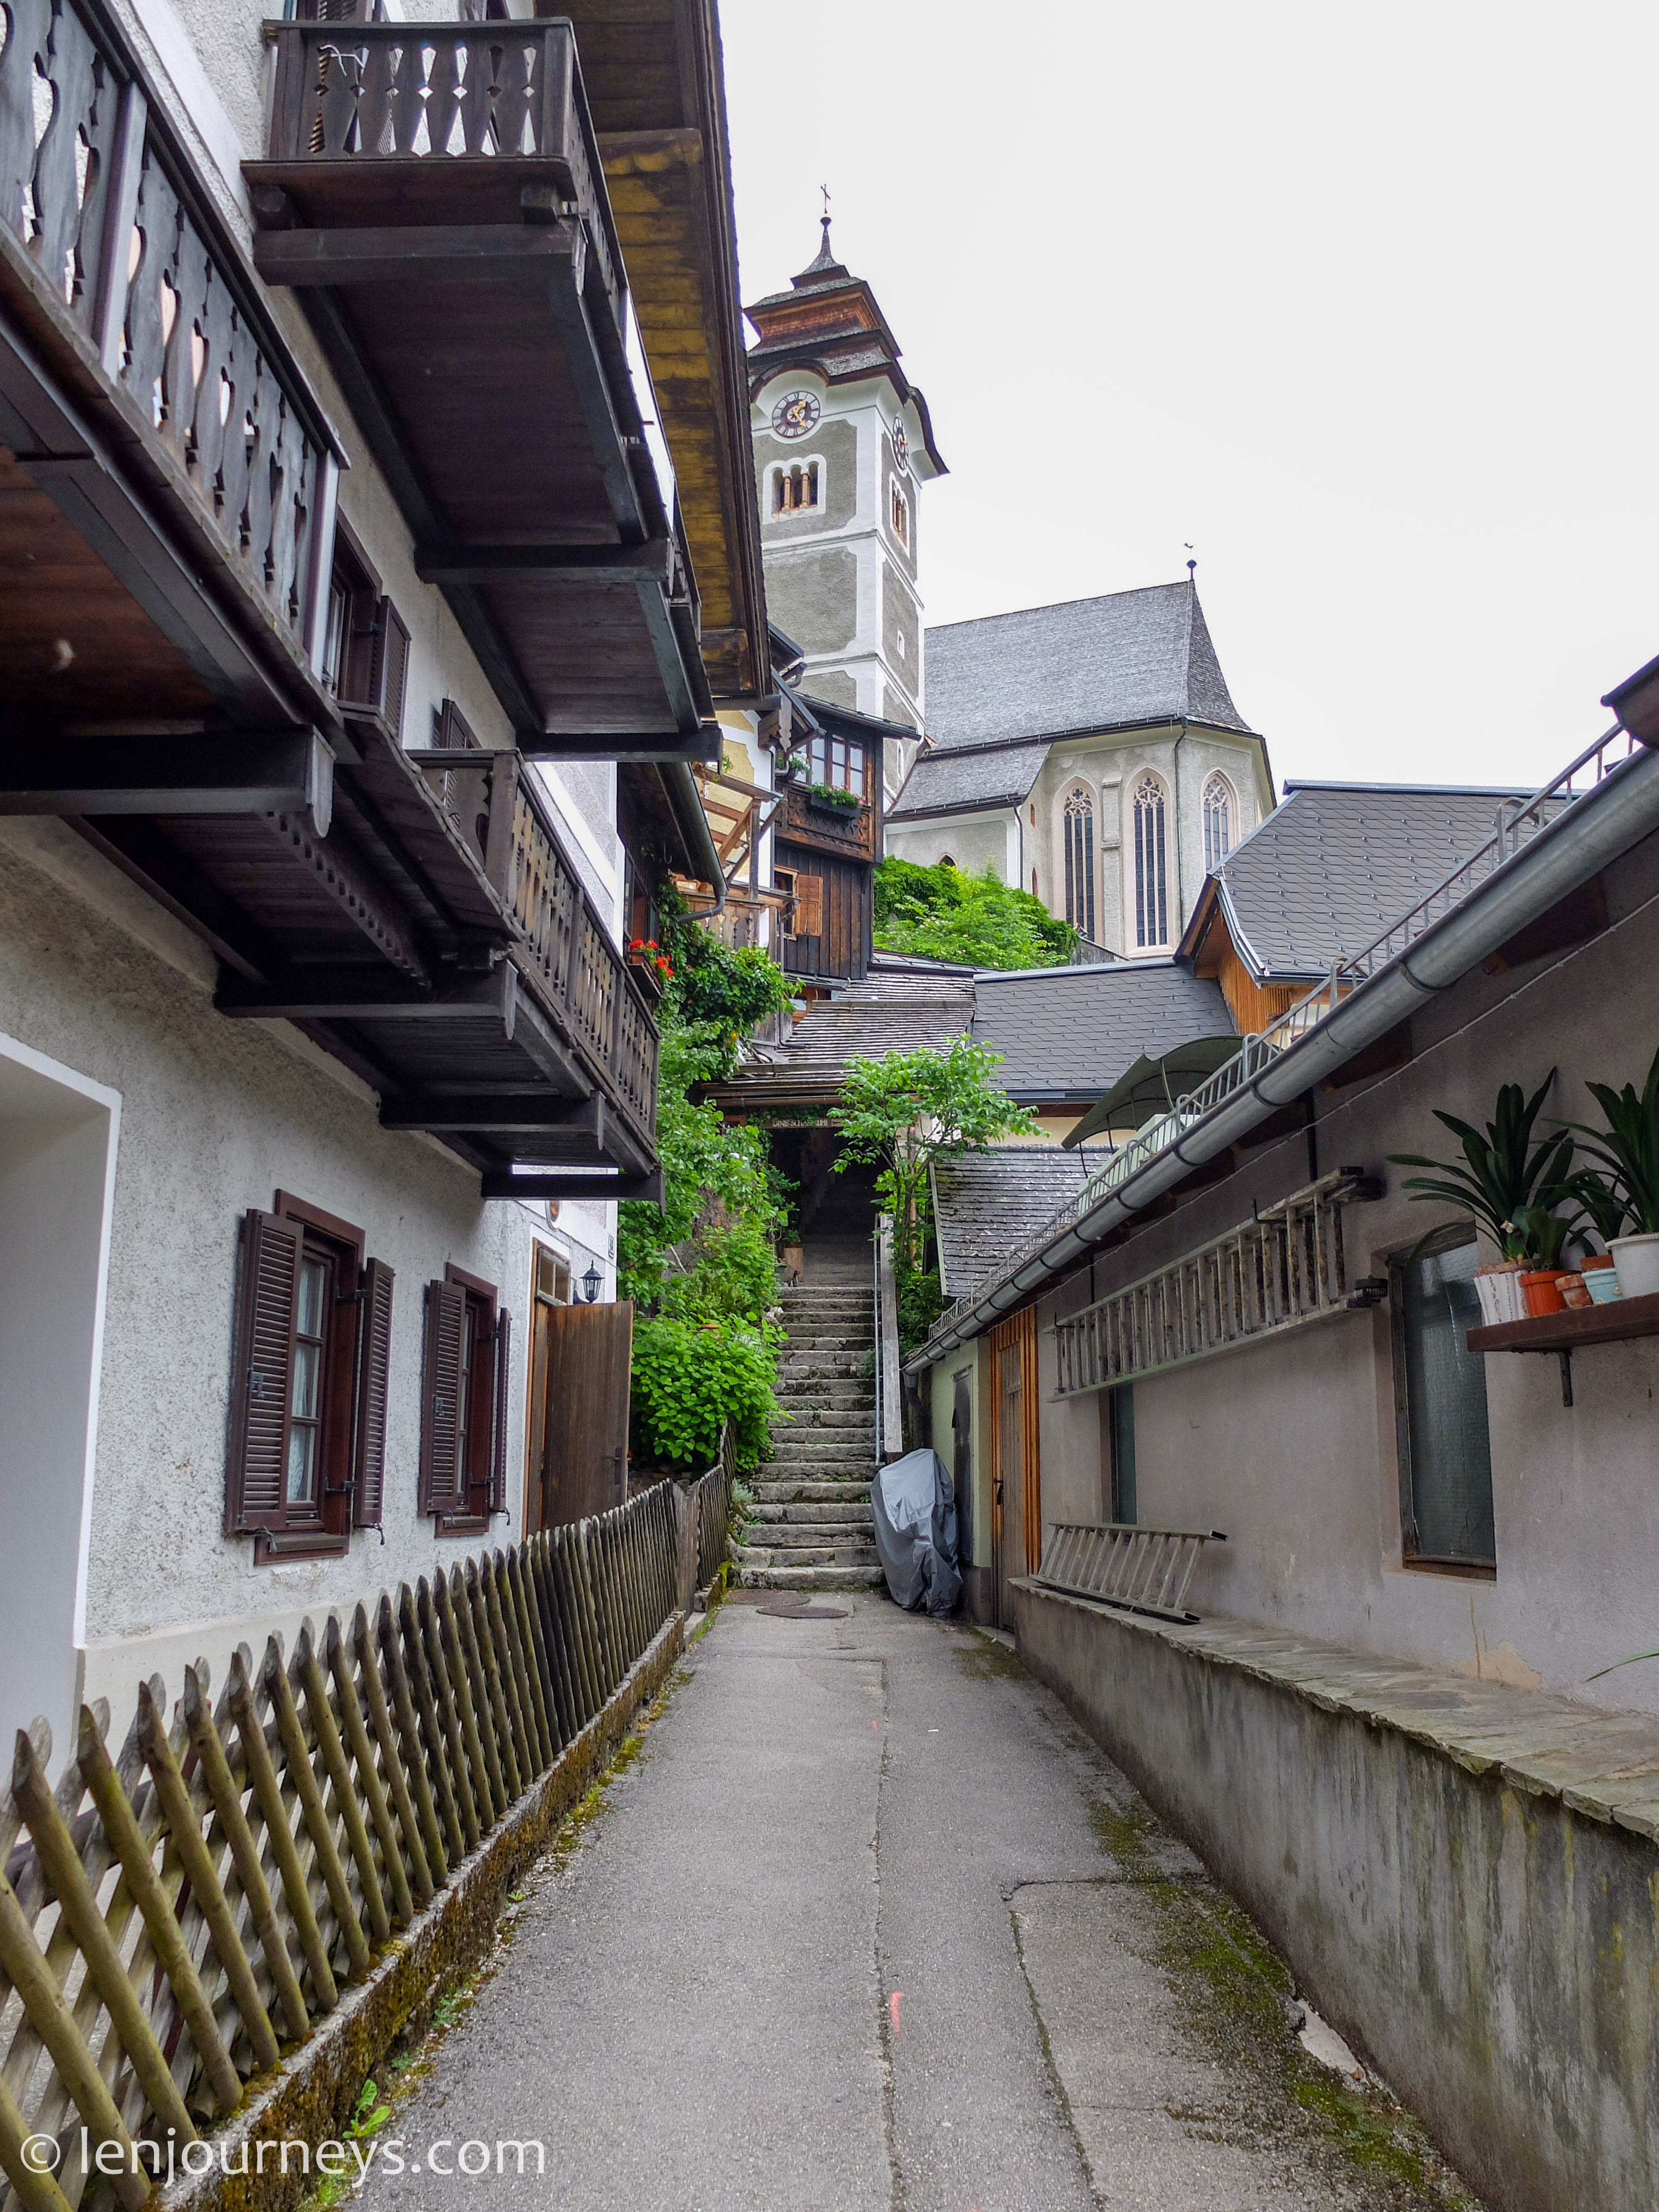 Alley leading to the church